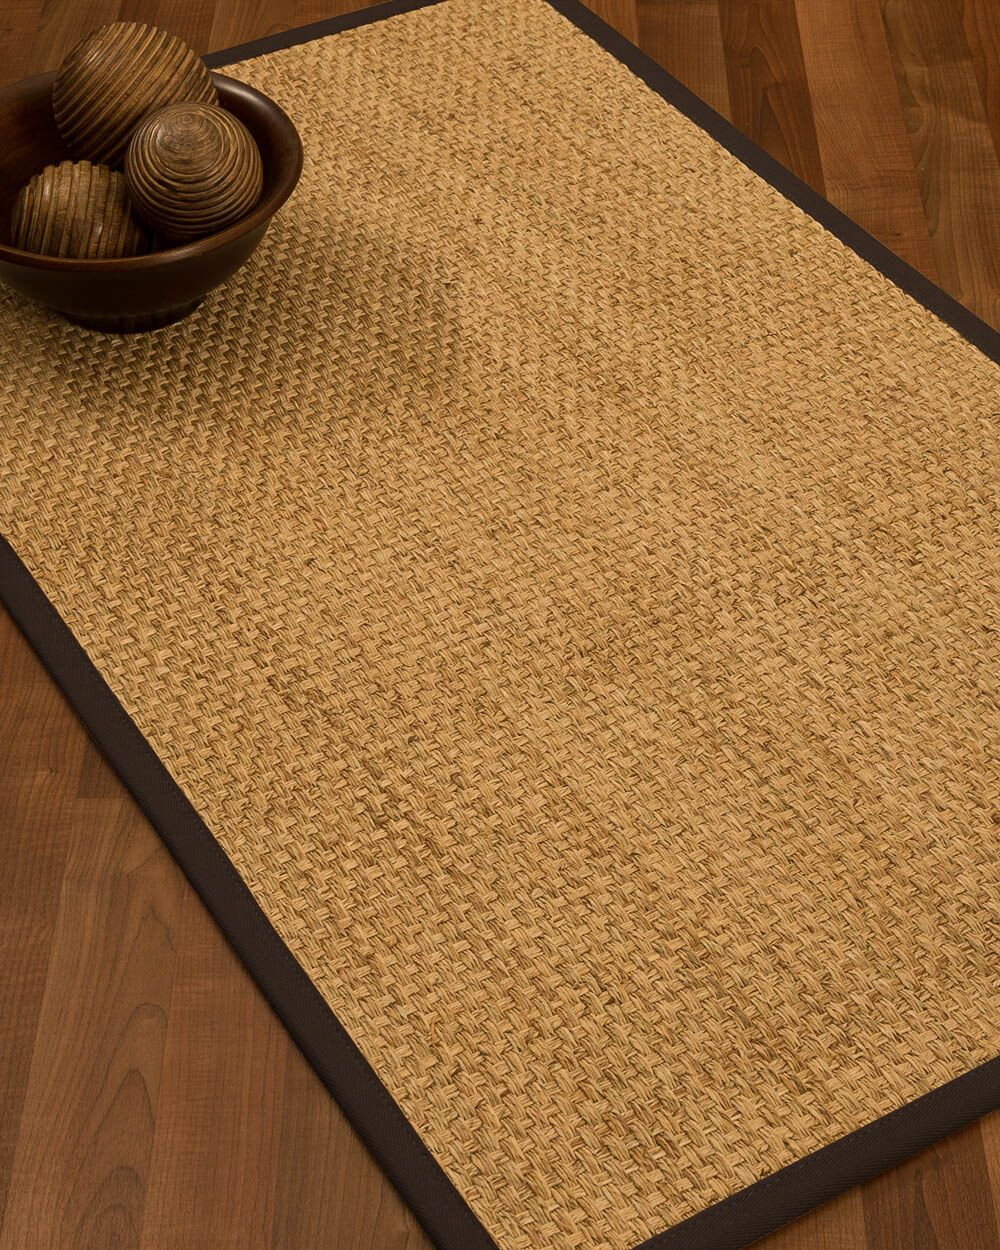 Caster Border Hand-Woven Beige/Fudge Area Rug Rug Size: Rectangle 5' x 8', Rug Pad Included: Yes